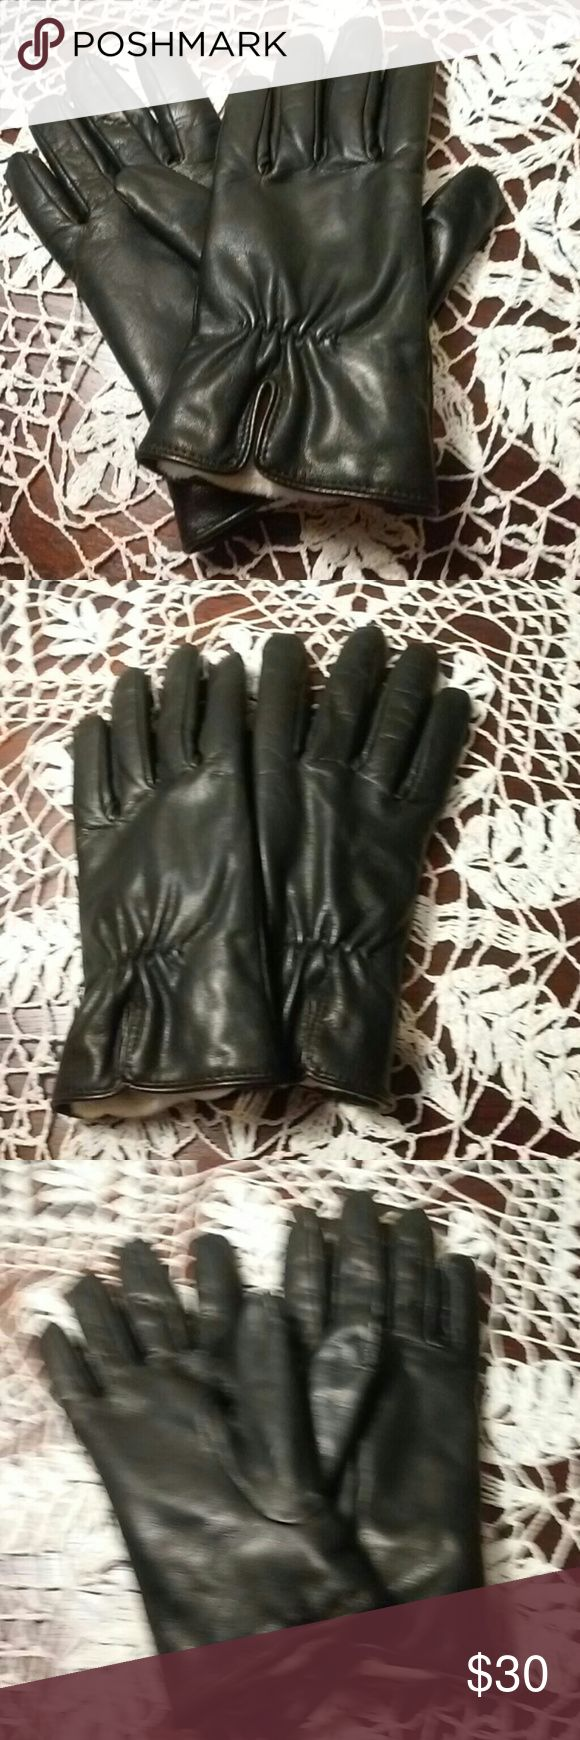 Fingerless gloves isotoner - Isotoner Luxe Touch Black Leather Gloves Isotoner Luxe Touch Black Leather Gloves These Gloves Feature